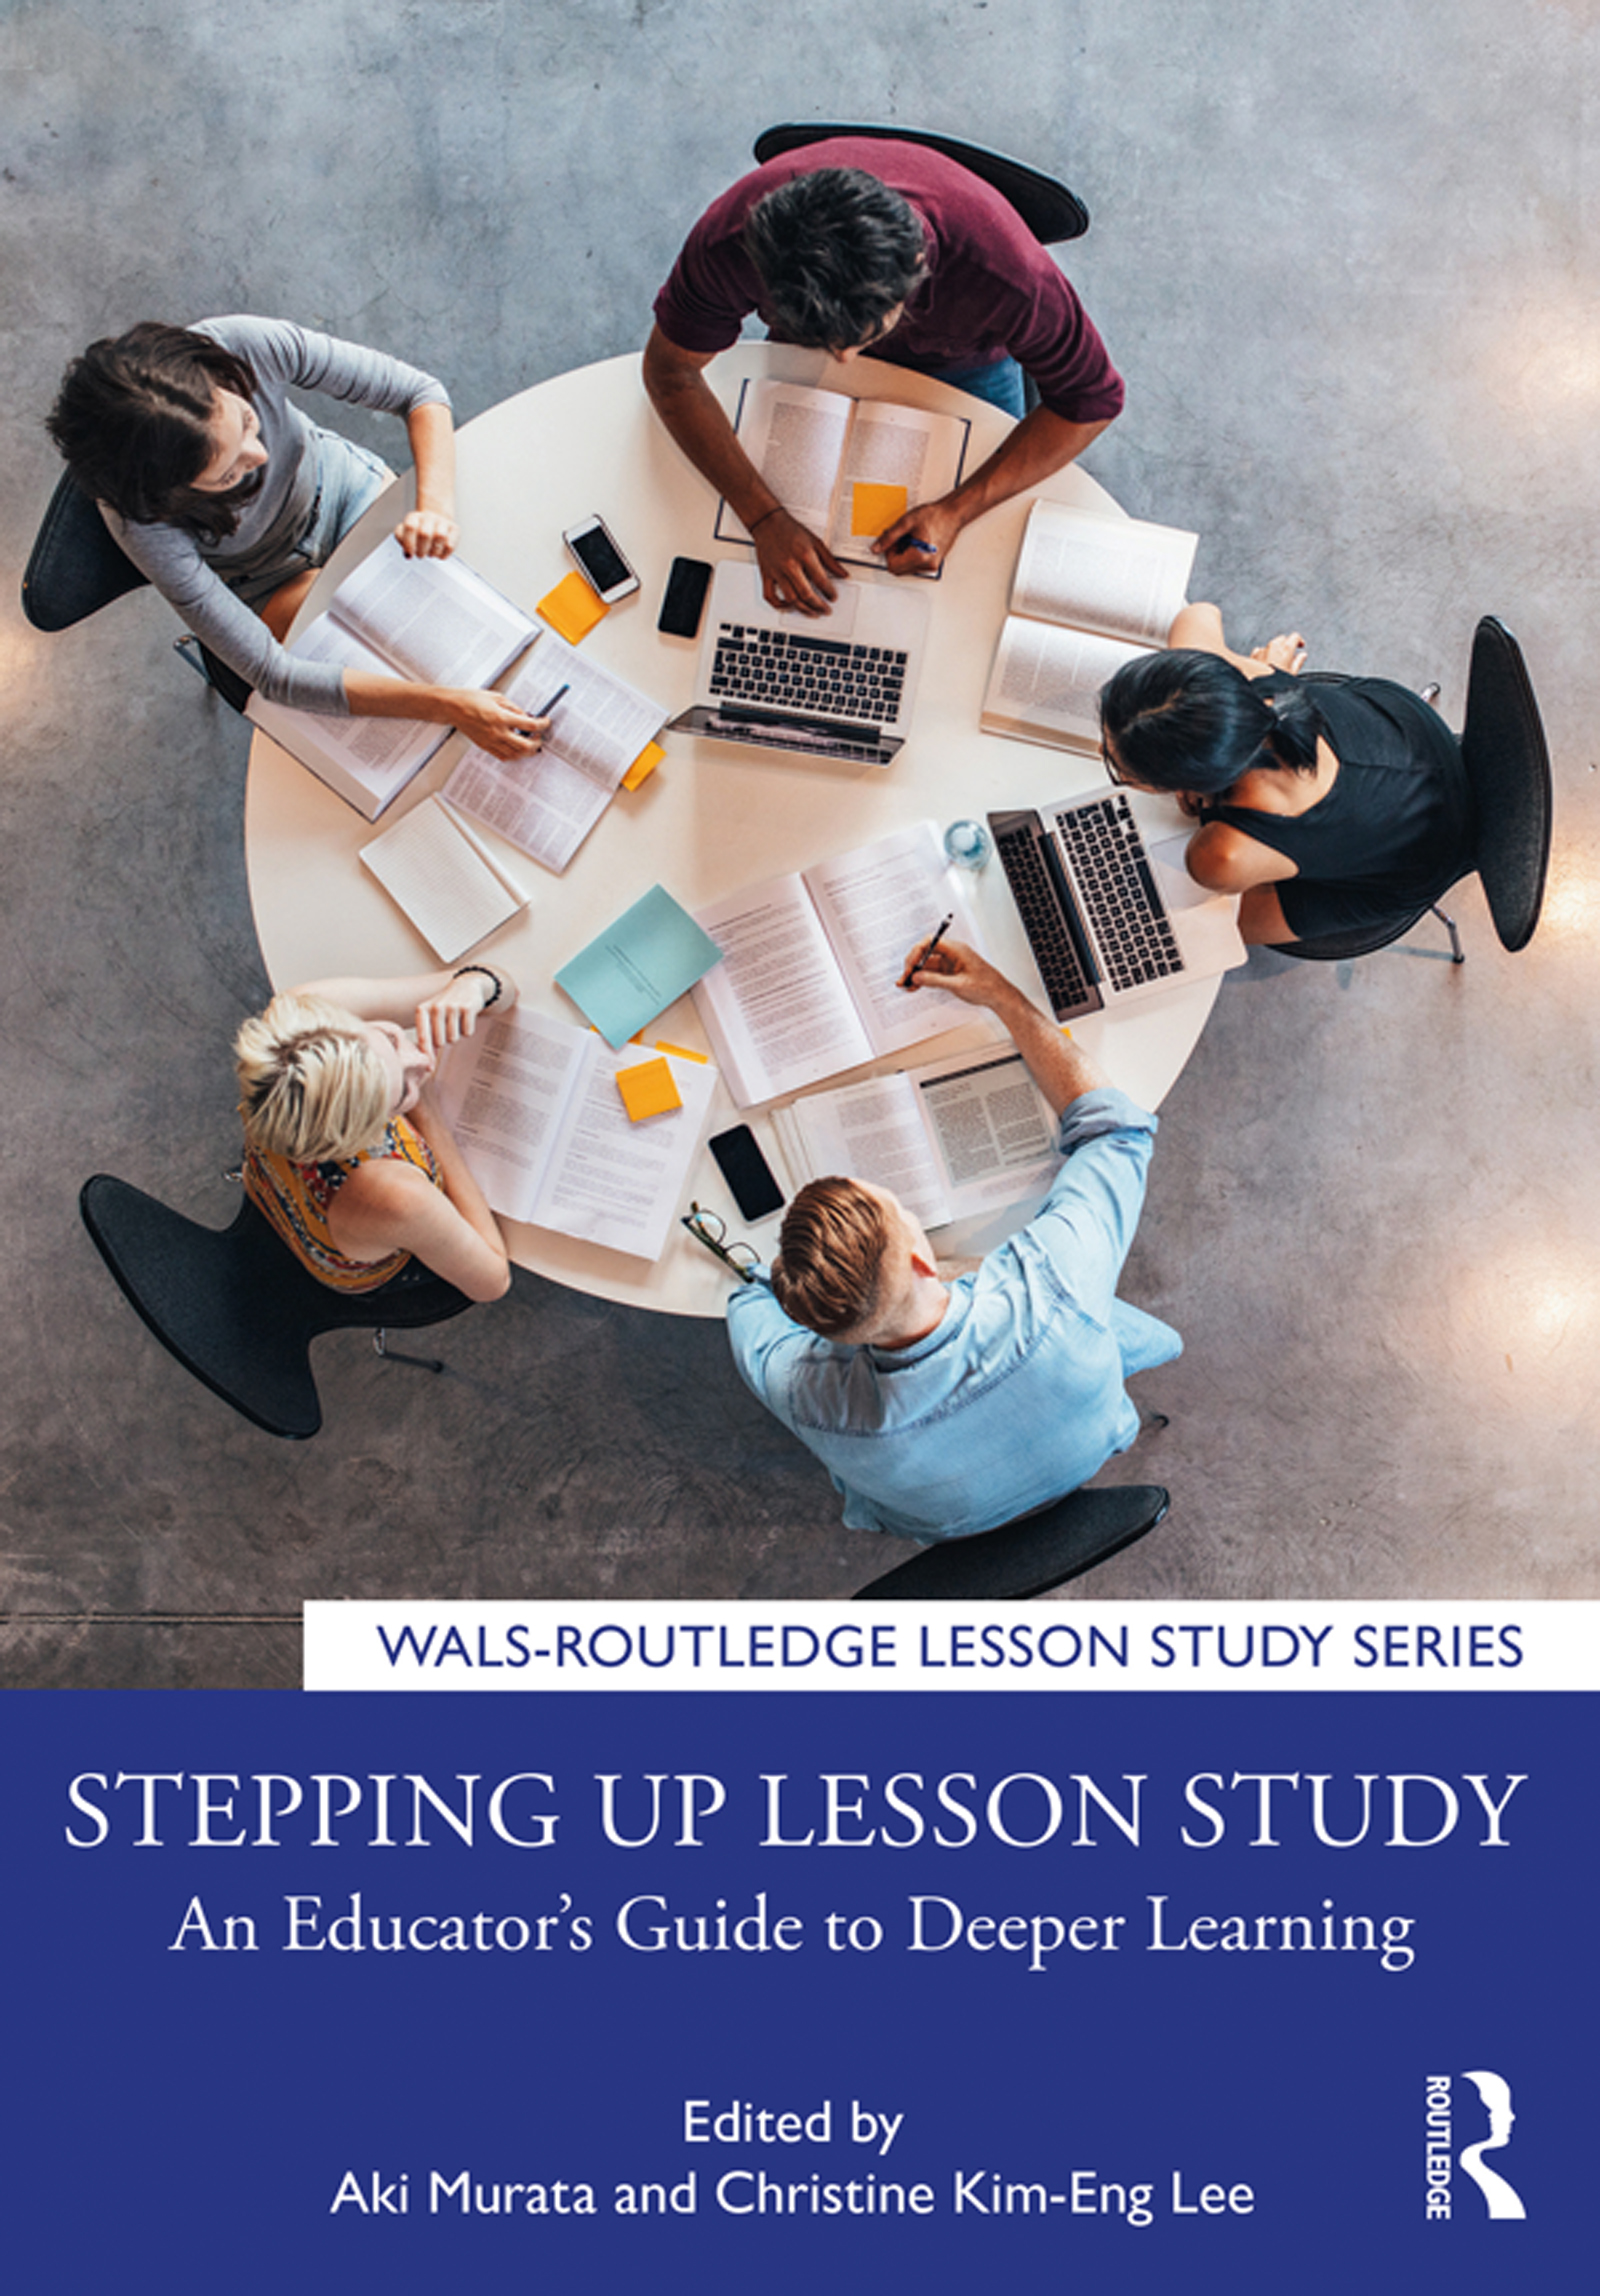 Strengthening knowledge development in teachers' conversations in lesson study